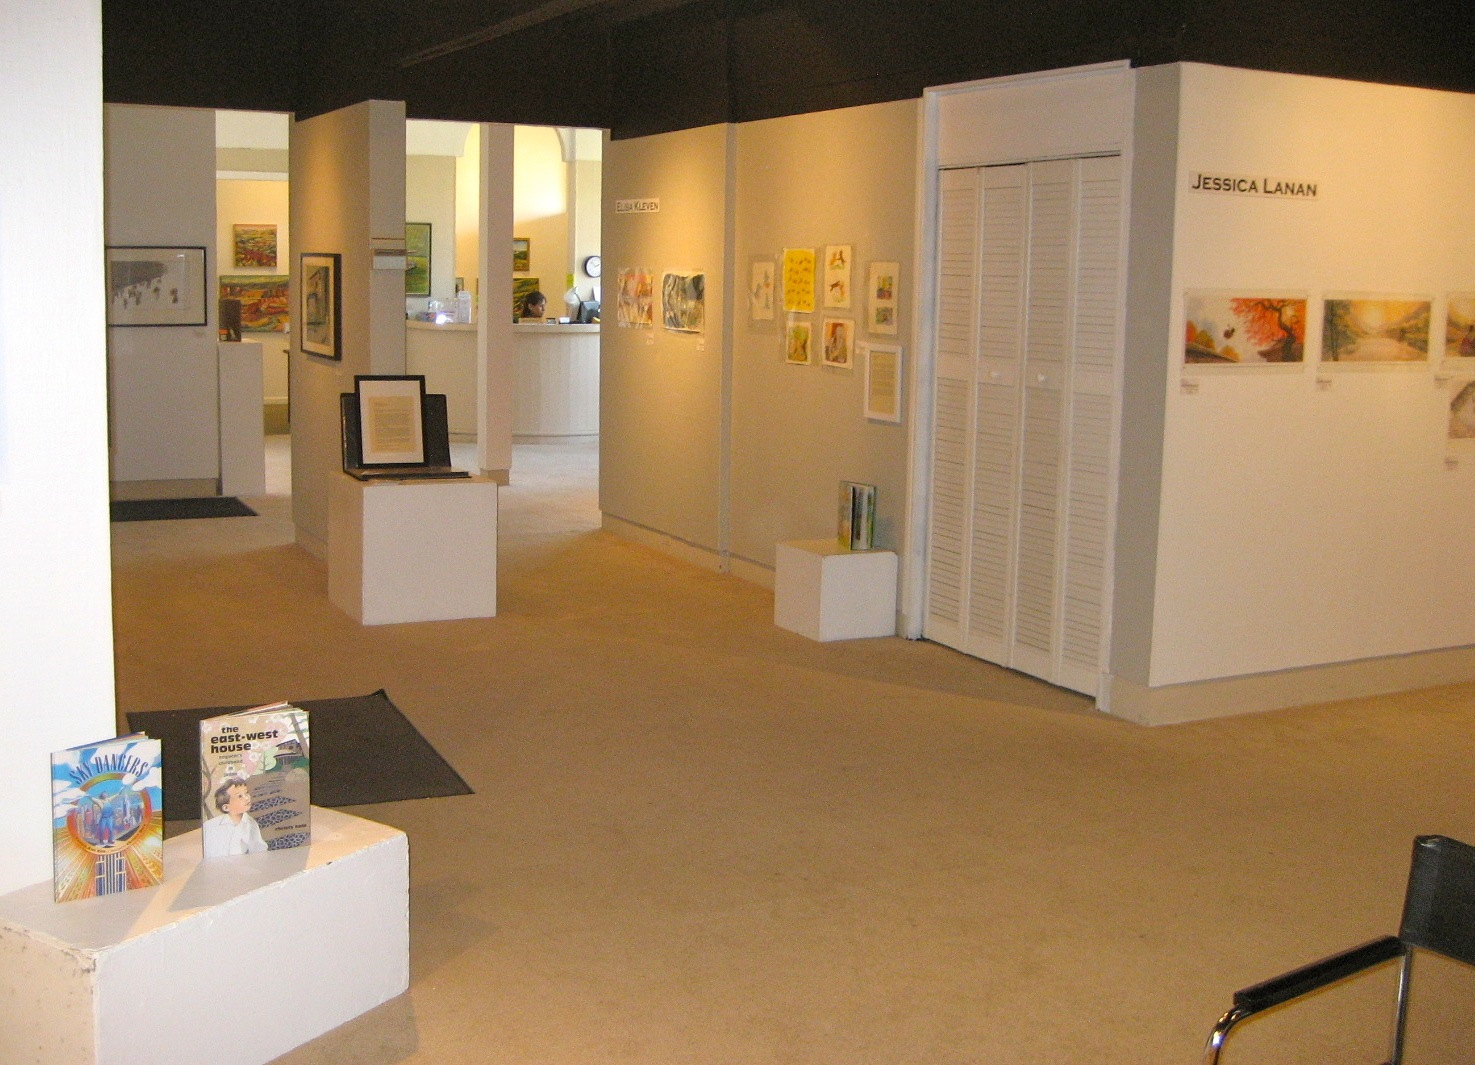 Photo of the children's book illustration exhibition at the Sun Gallery in Hayward, CA (Photo courtesy of the Sun Gallery)